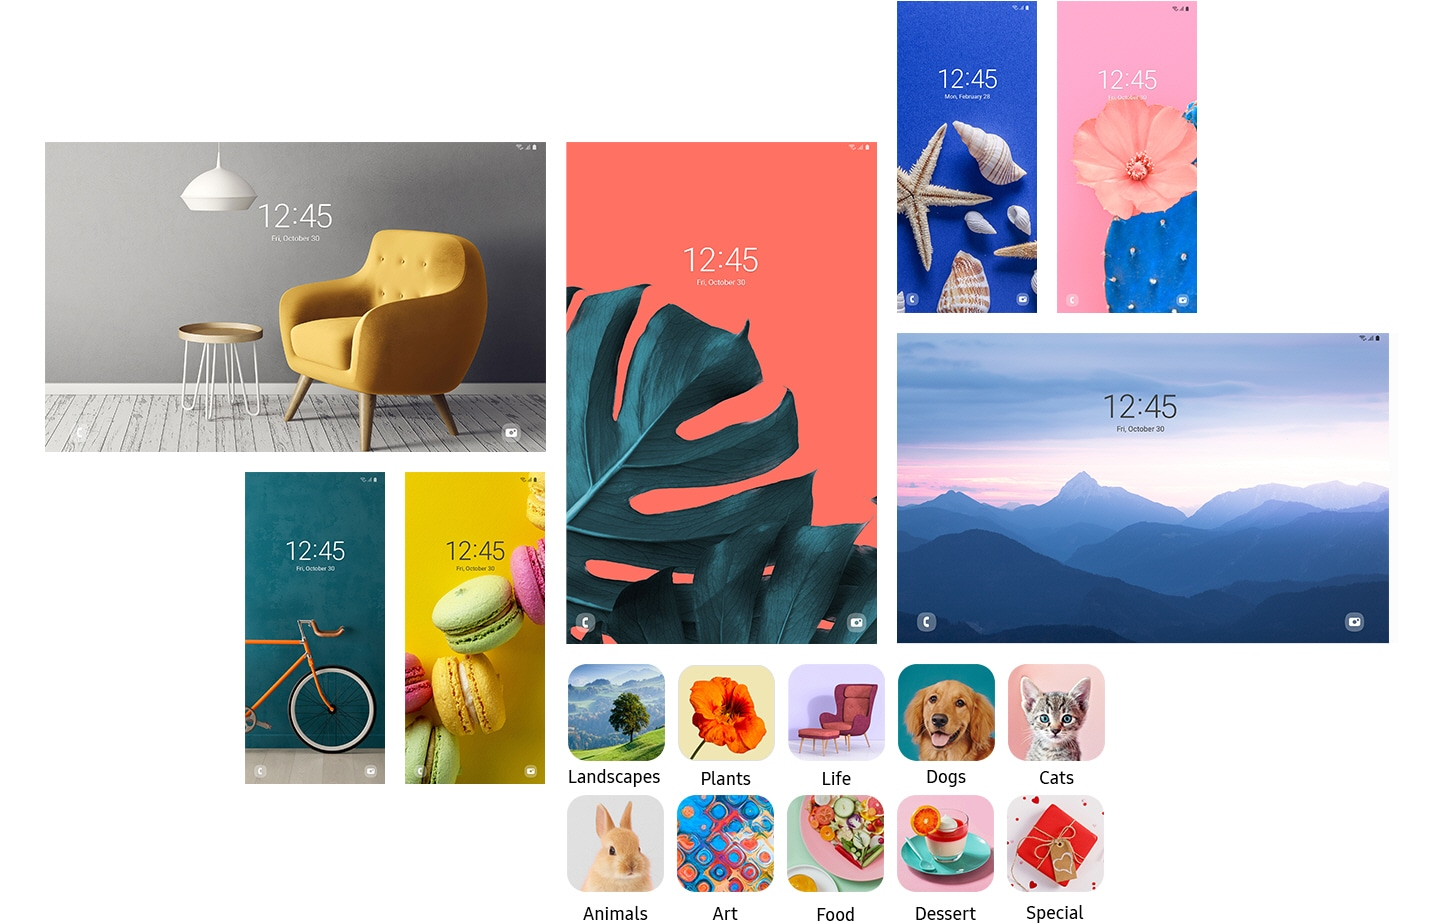 Seven different Galaxy device lock screens, in different sizes, are laid out. They all show different images from different themes. On the bottom, thumbnail icons of 10 different image categories are also laid out to show the diverse options of images provided by Dynamic Lock screen.